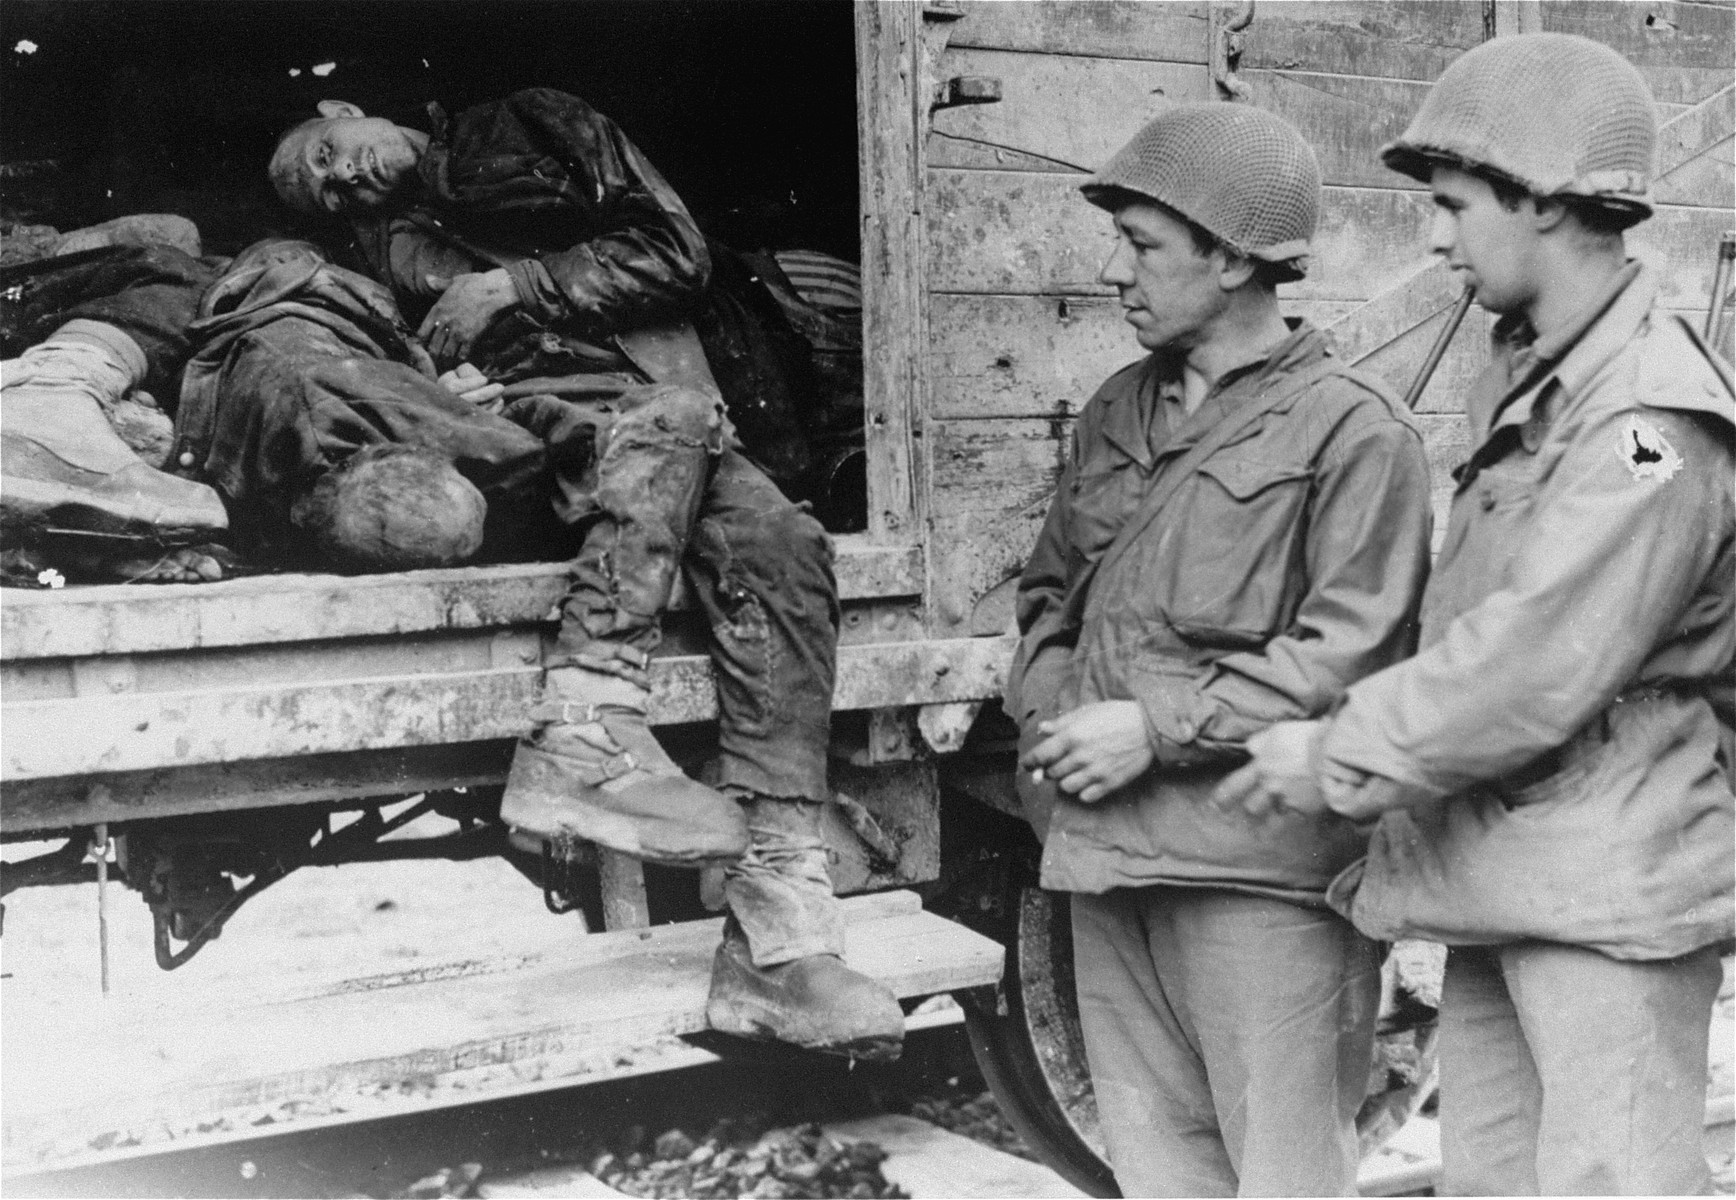 American soldiers view the bodies in one of the open railcars of the Dachau death train.